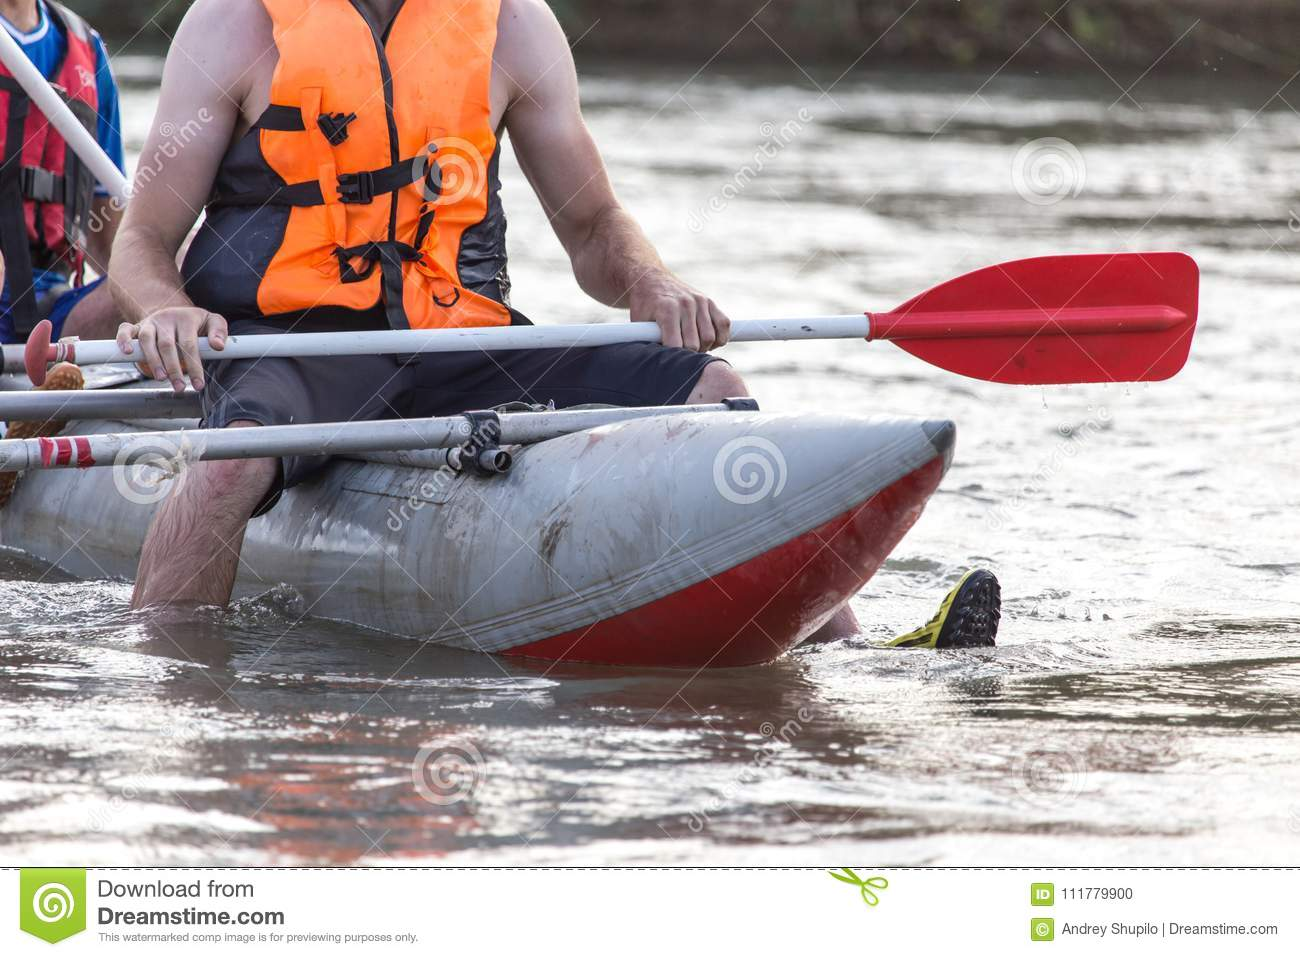 Boat on the rough river. extreme sport